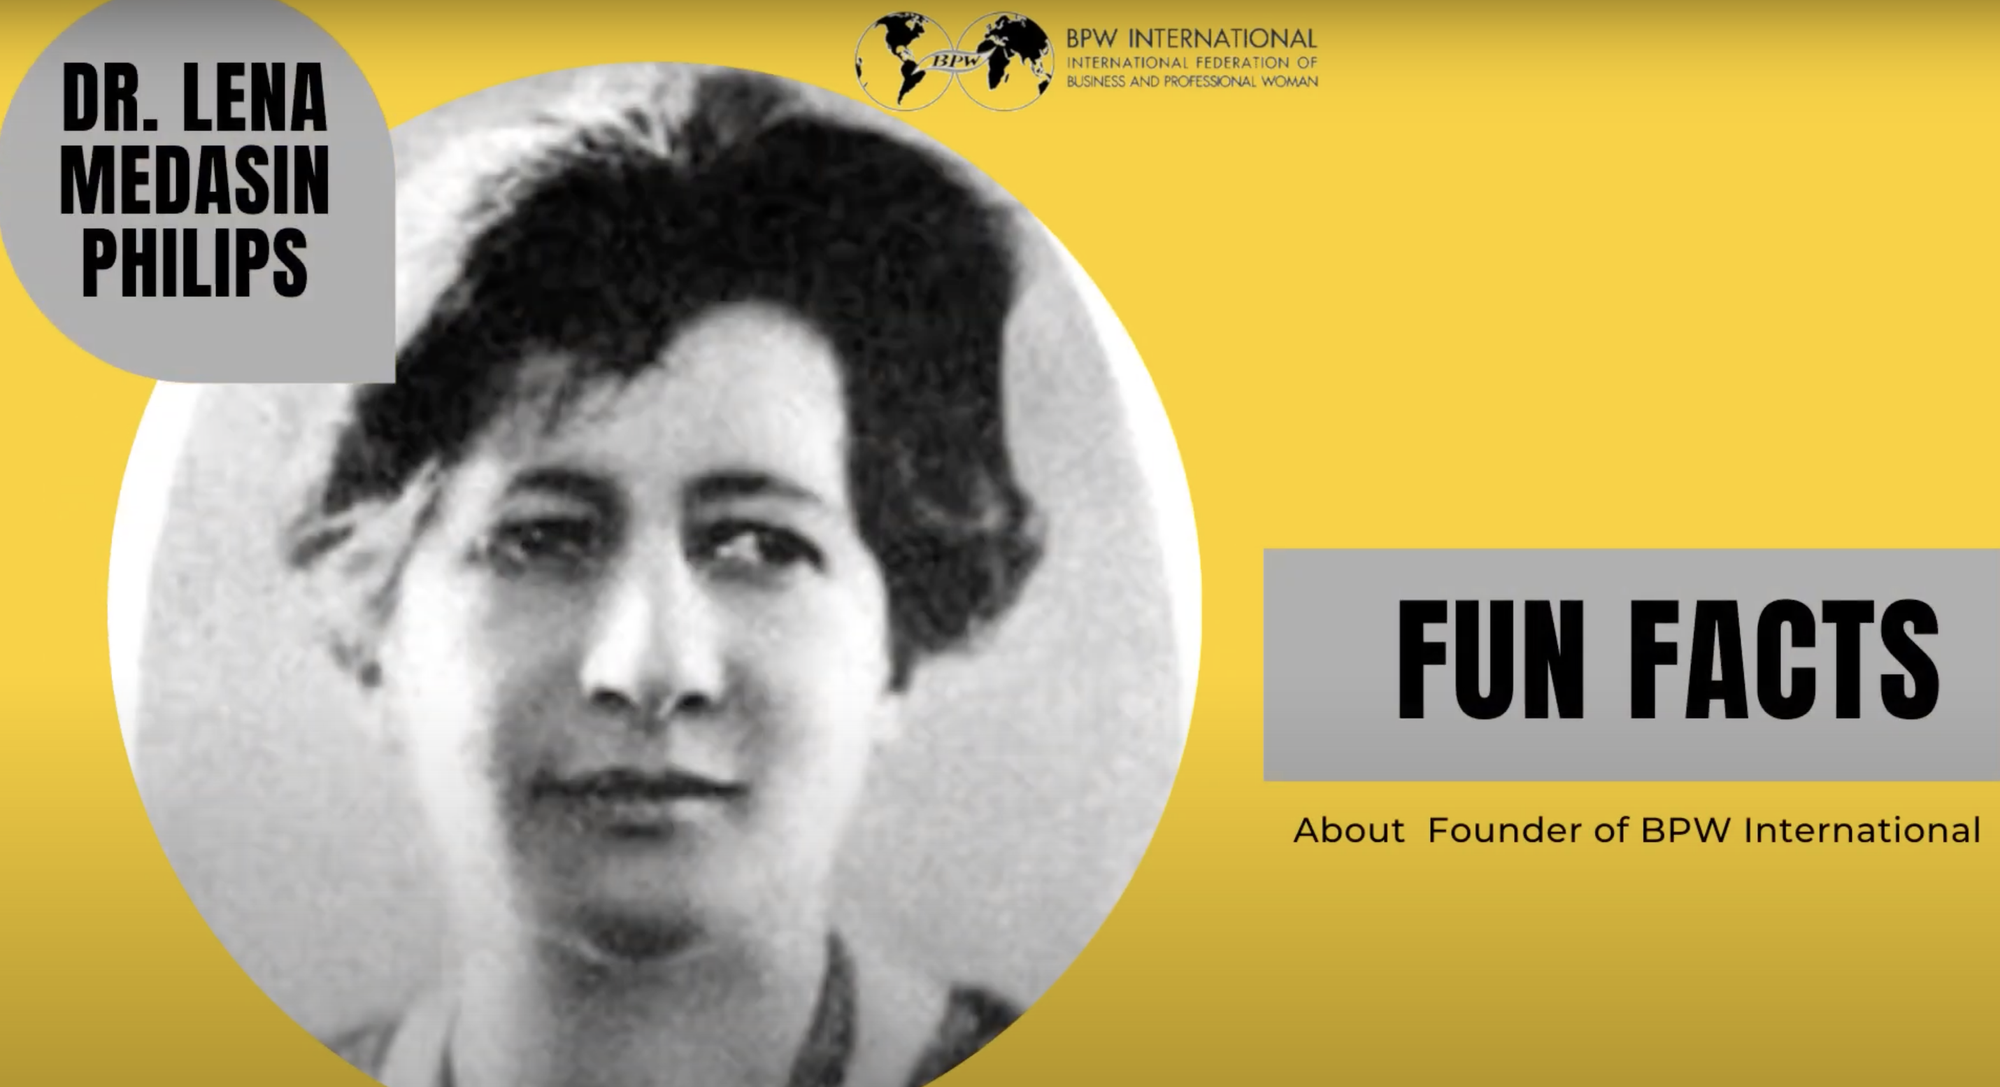 Fun Facts about our Founder Dr. Lena Madesin Philips